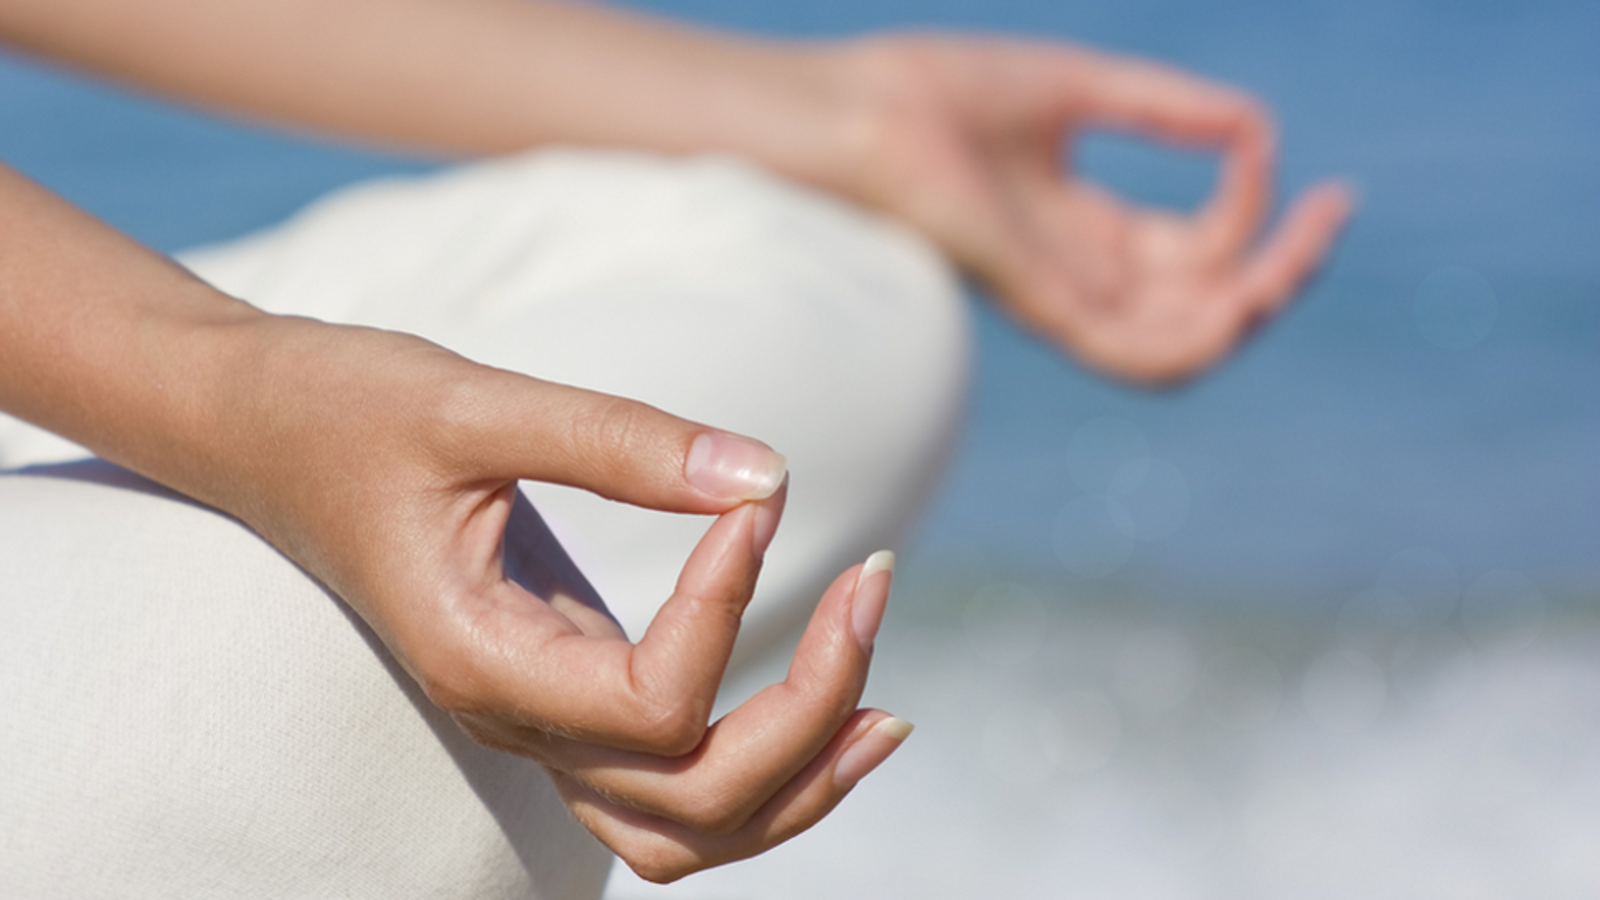 The science behind meditation, and why it makes you feel better